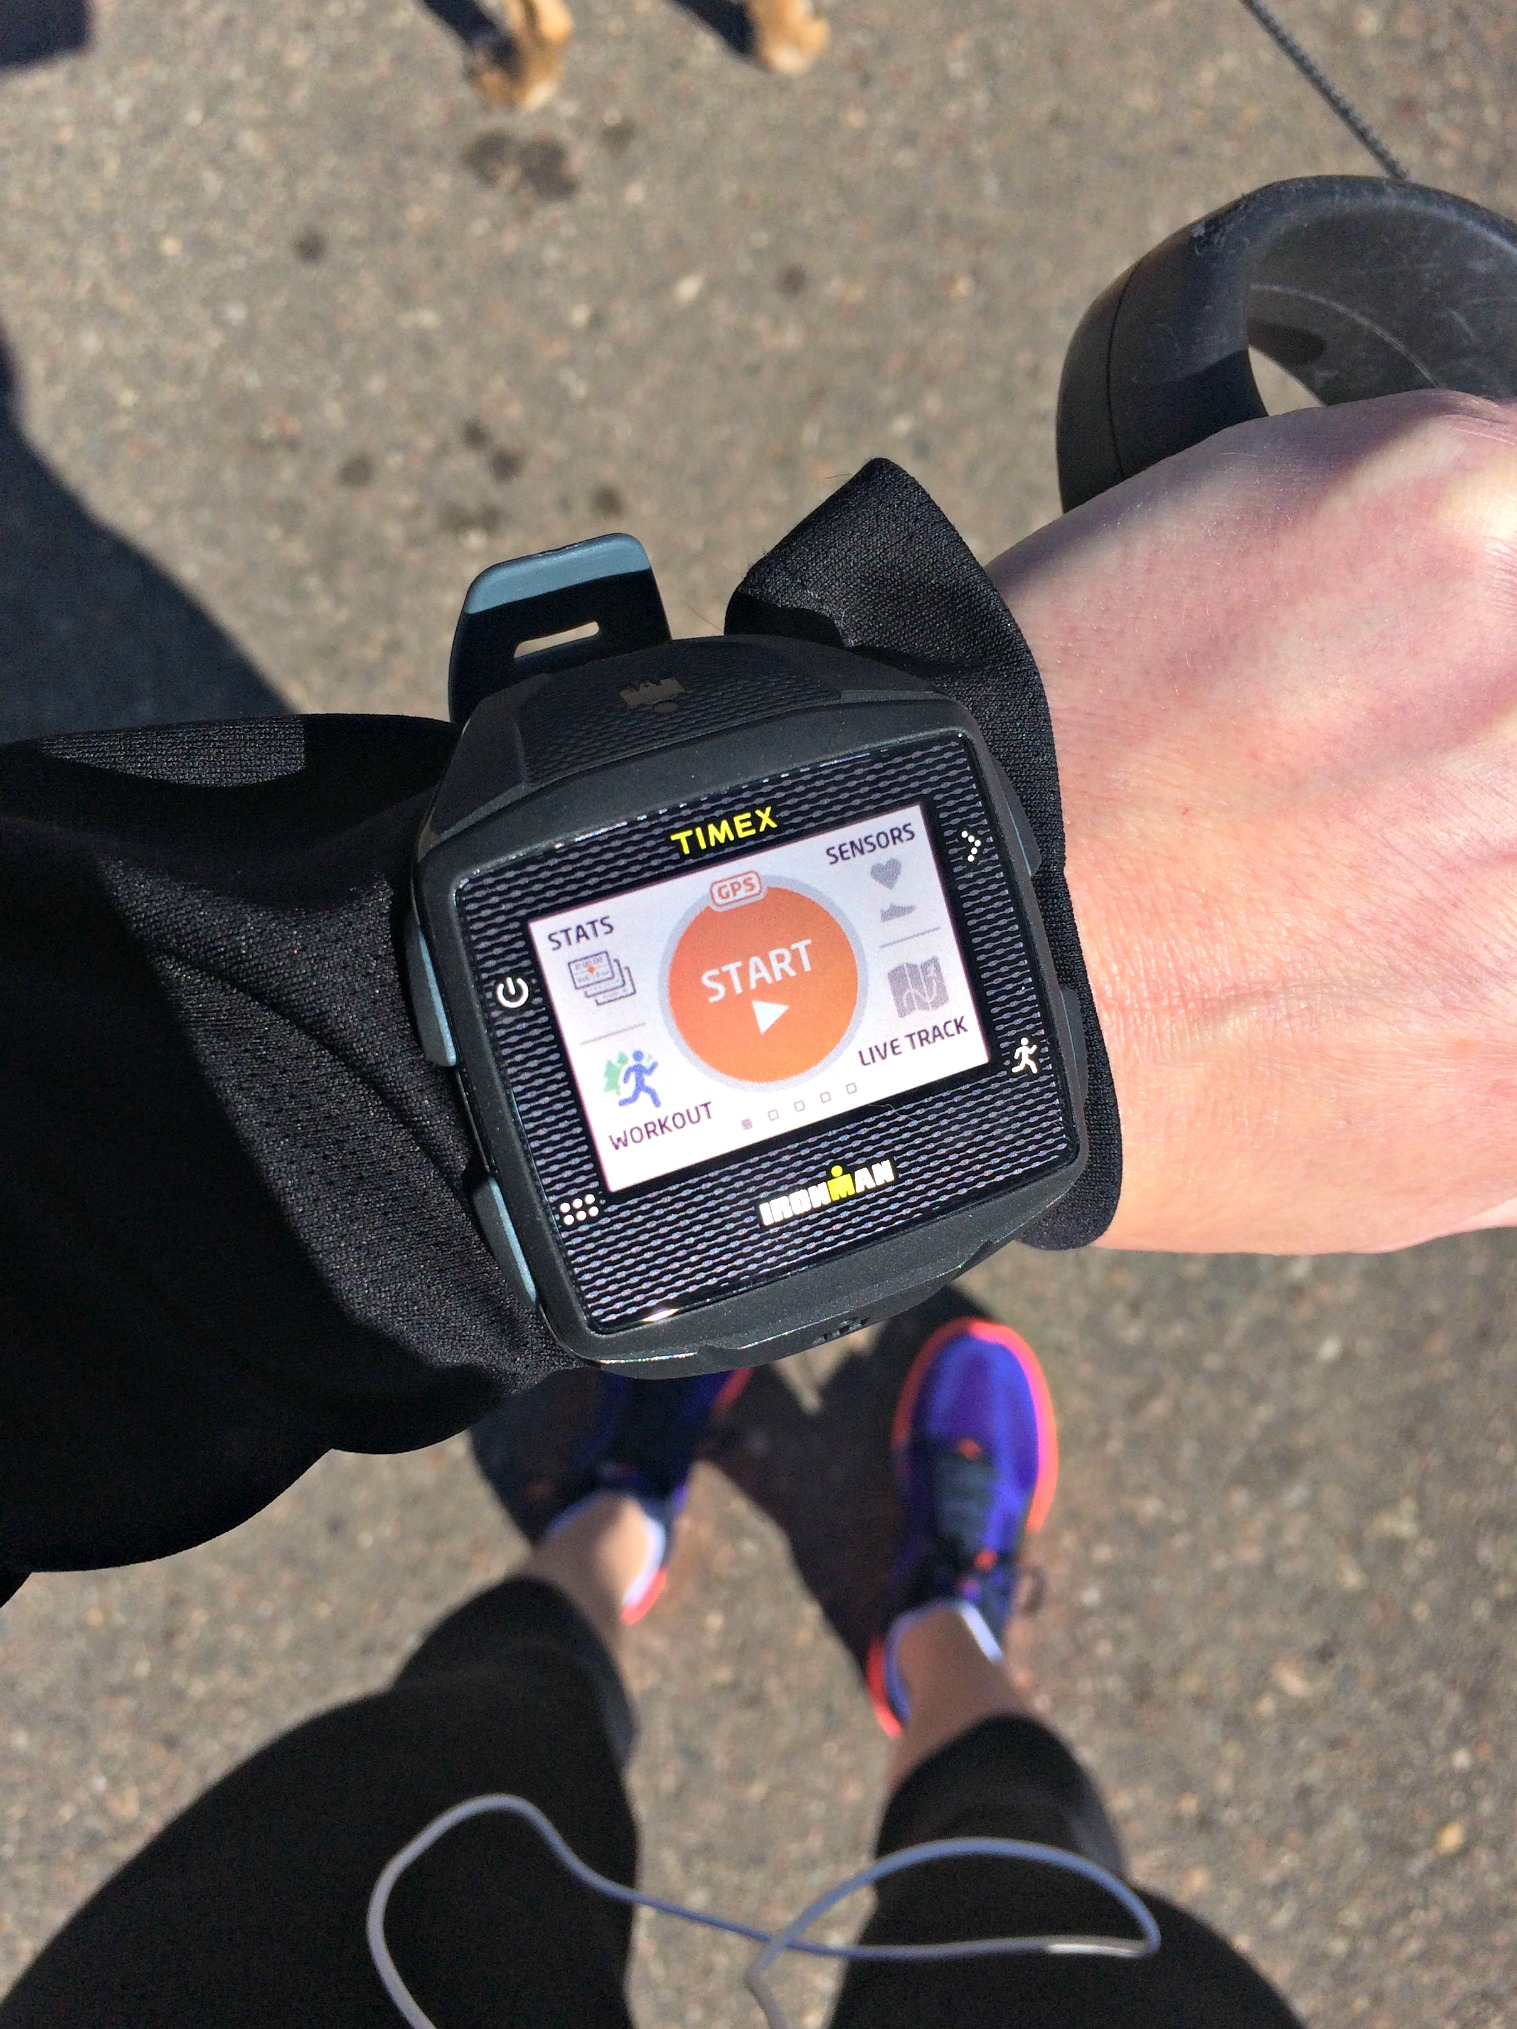 Timex GPS ONE+ watch for running